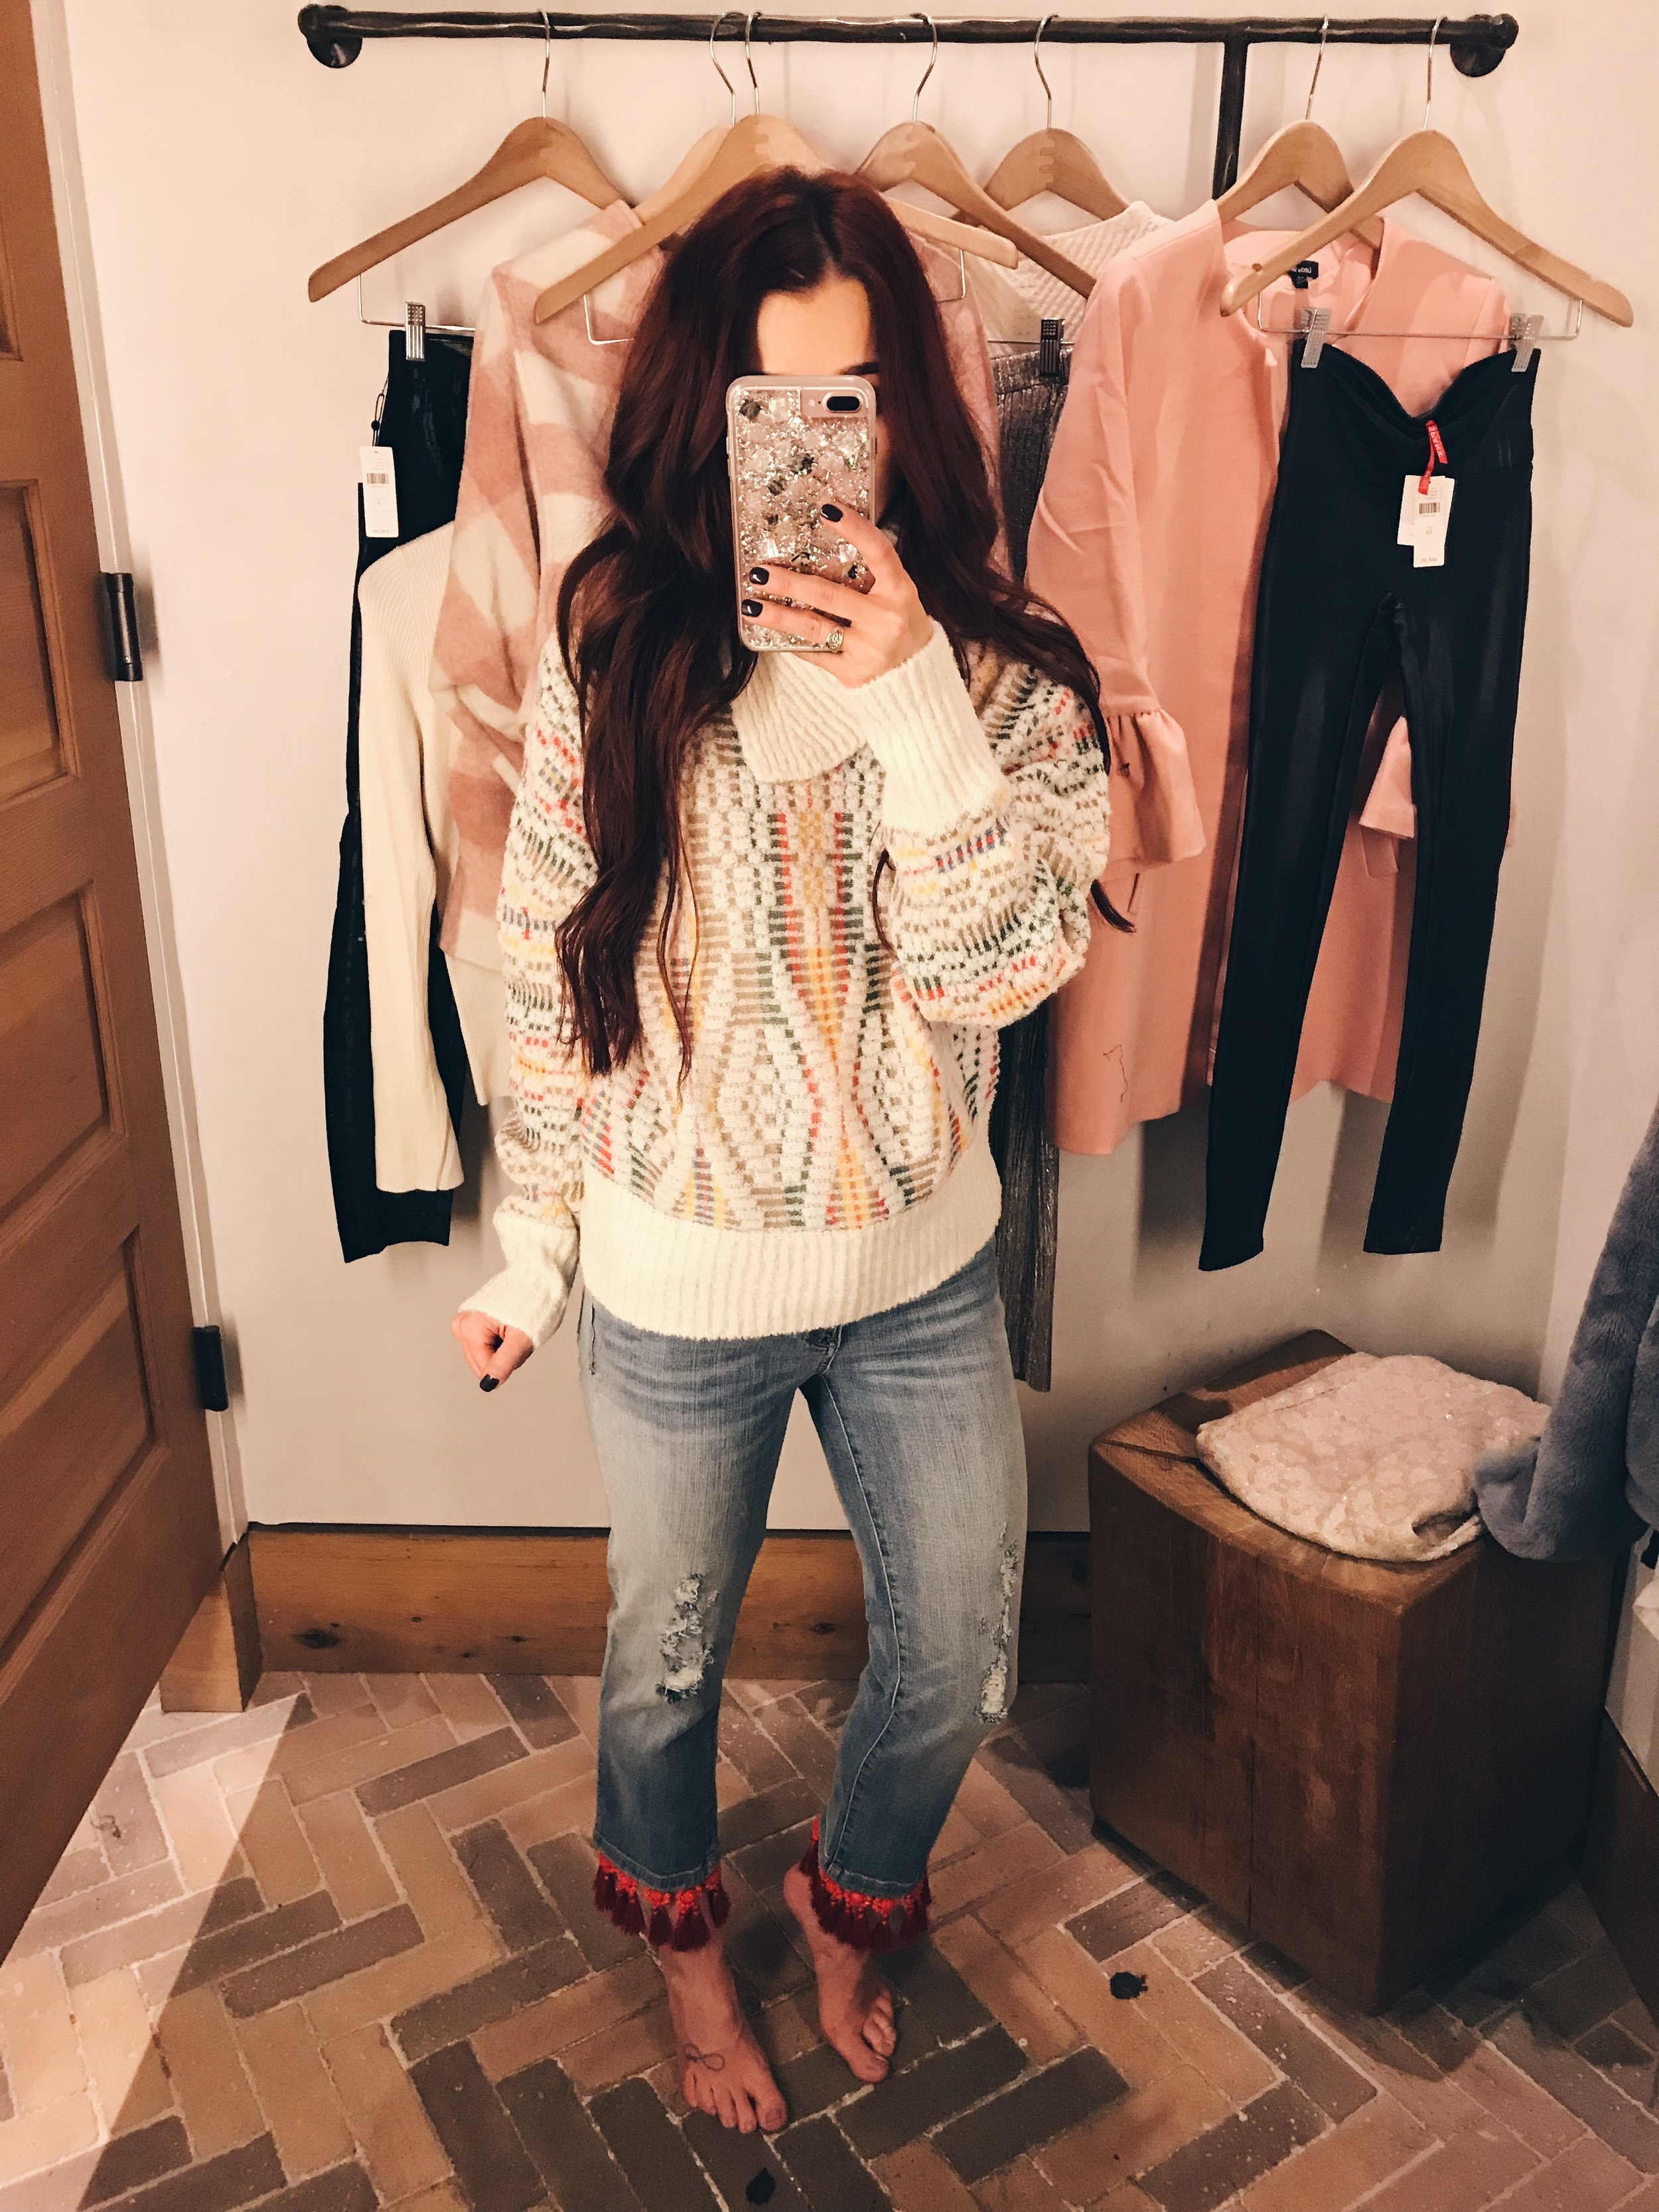 This whole look is from Anthropology and I am considering this as my Thanksgiving outfit. Details will be on my Instagram soon, but in the meantime, check out the jeans and sweater.